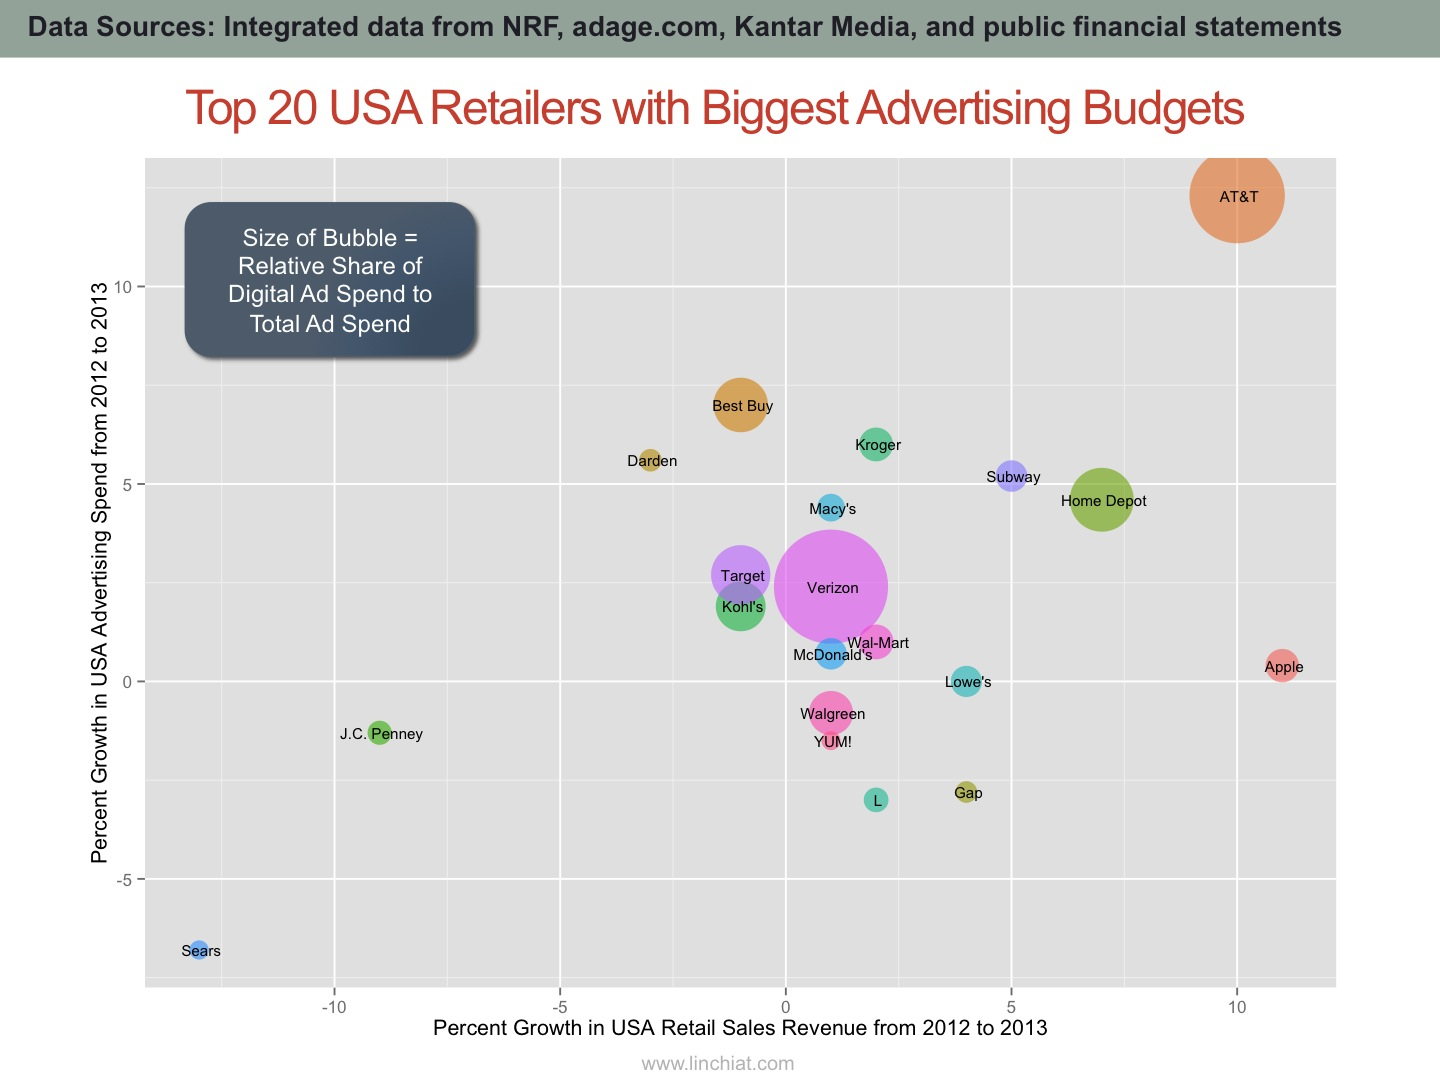 Comparing relative share of digital advertising spend to total advertising spend, among top USA retailers